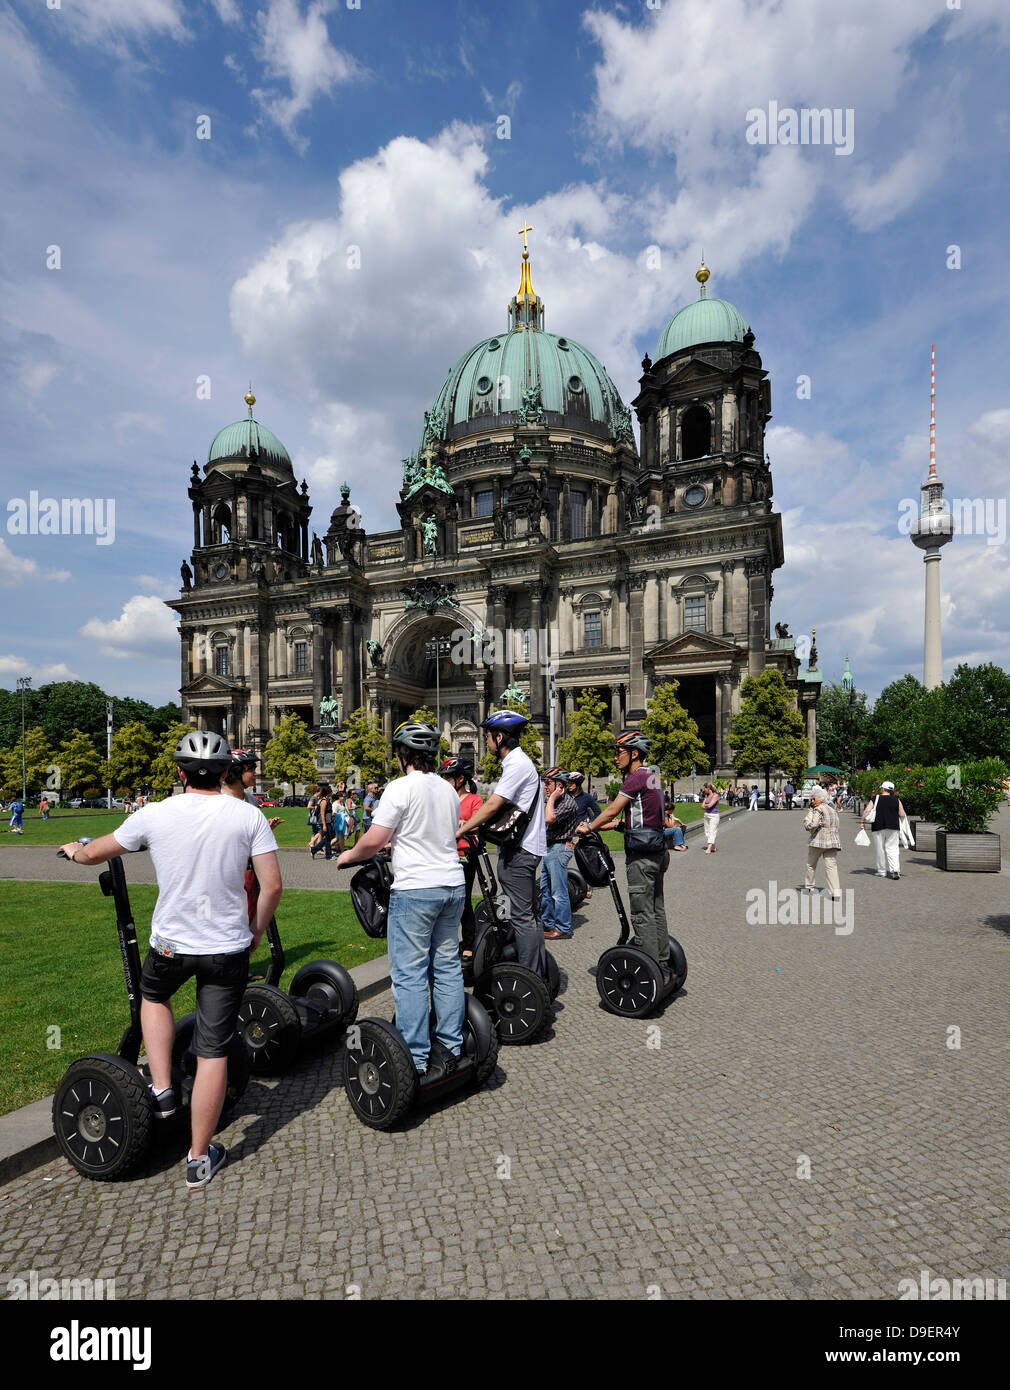 Town guidance for tourists with Segways, before Berlin cathedral in the pleasure garden, UNESCO world cultural heritage, - Stock Image